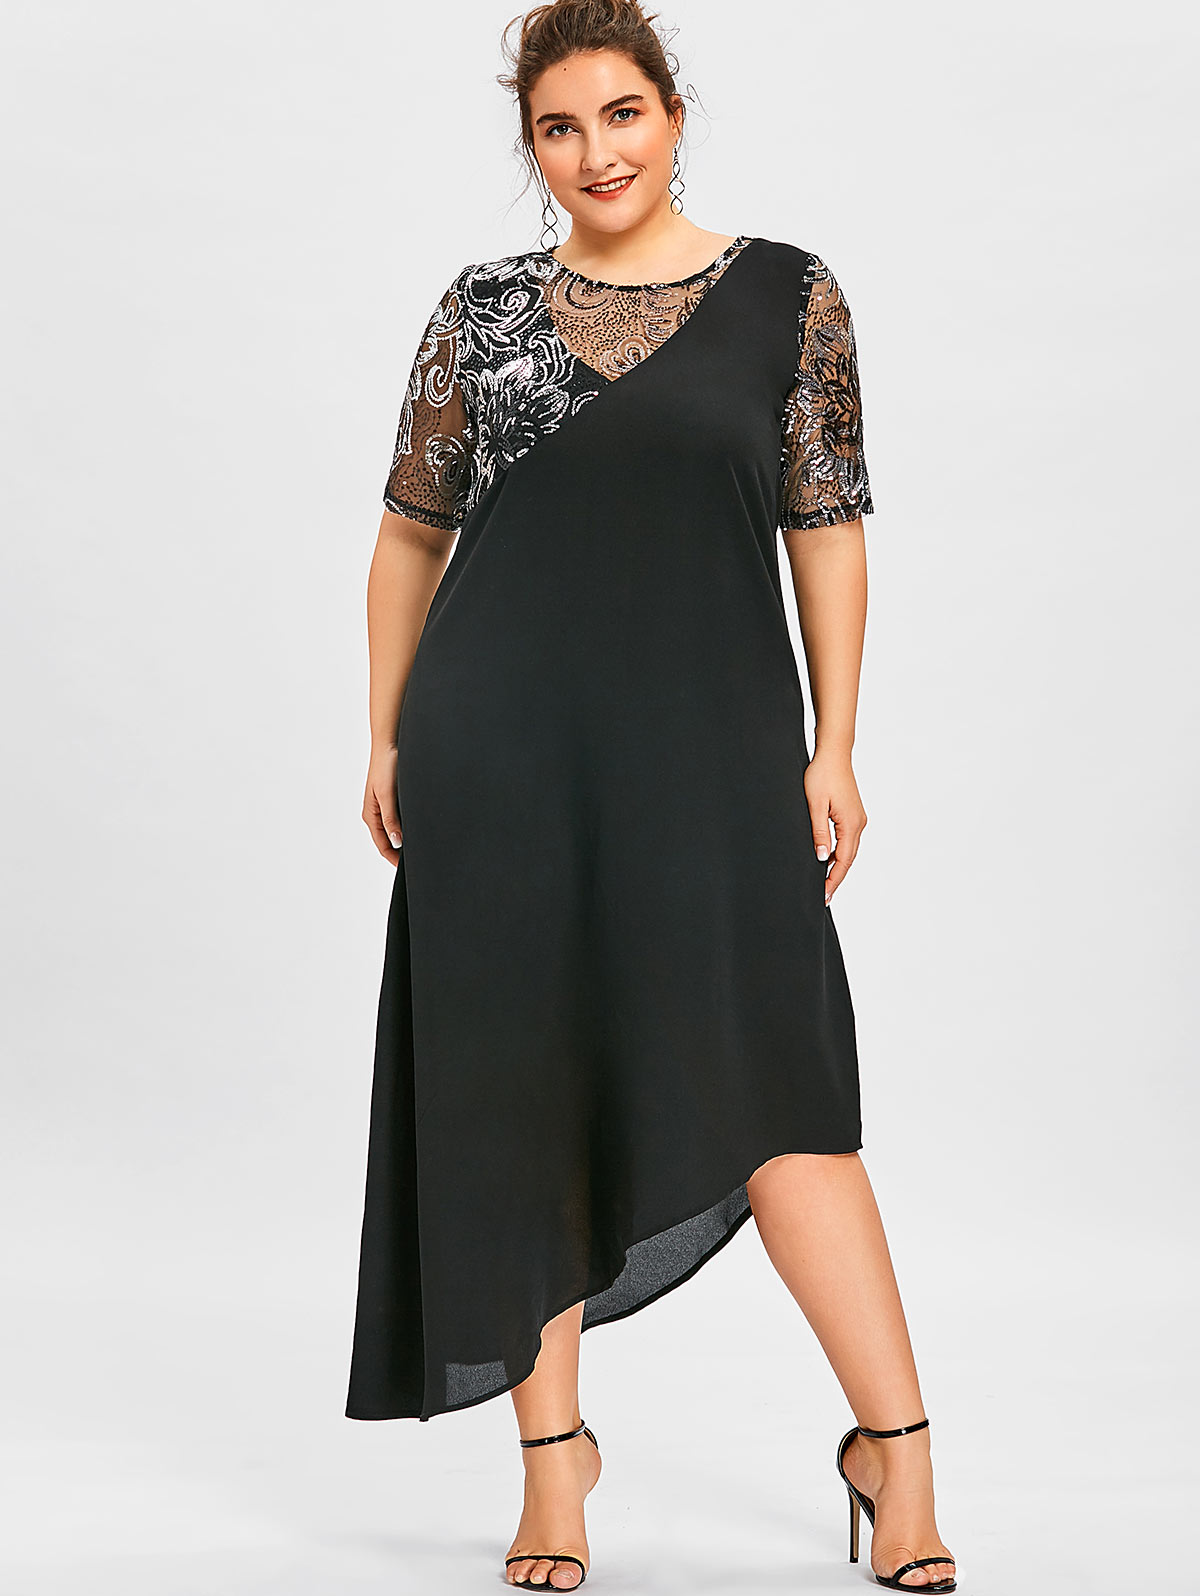 gamiss women sparkly party dresses plus size 5xl sequined